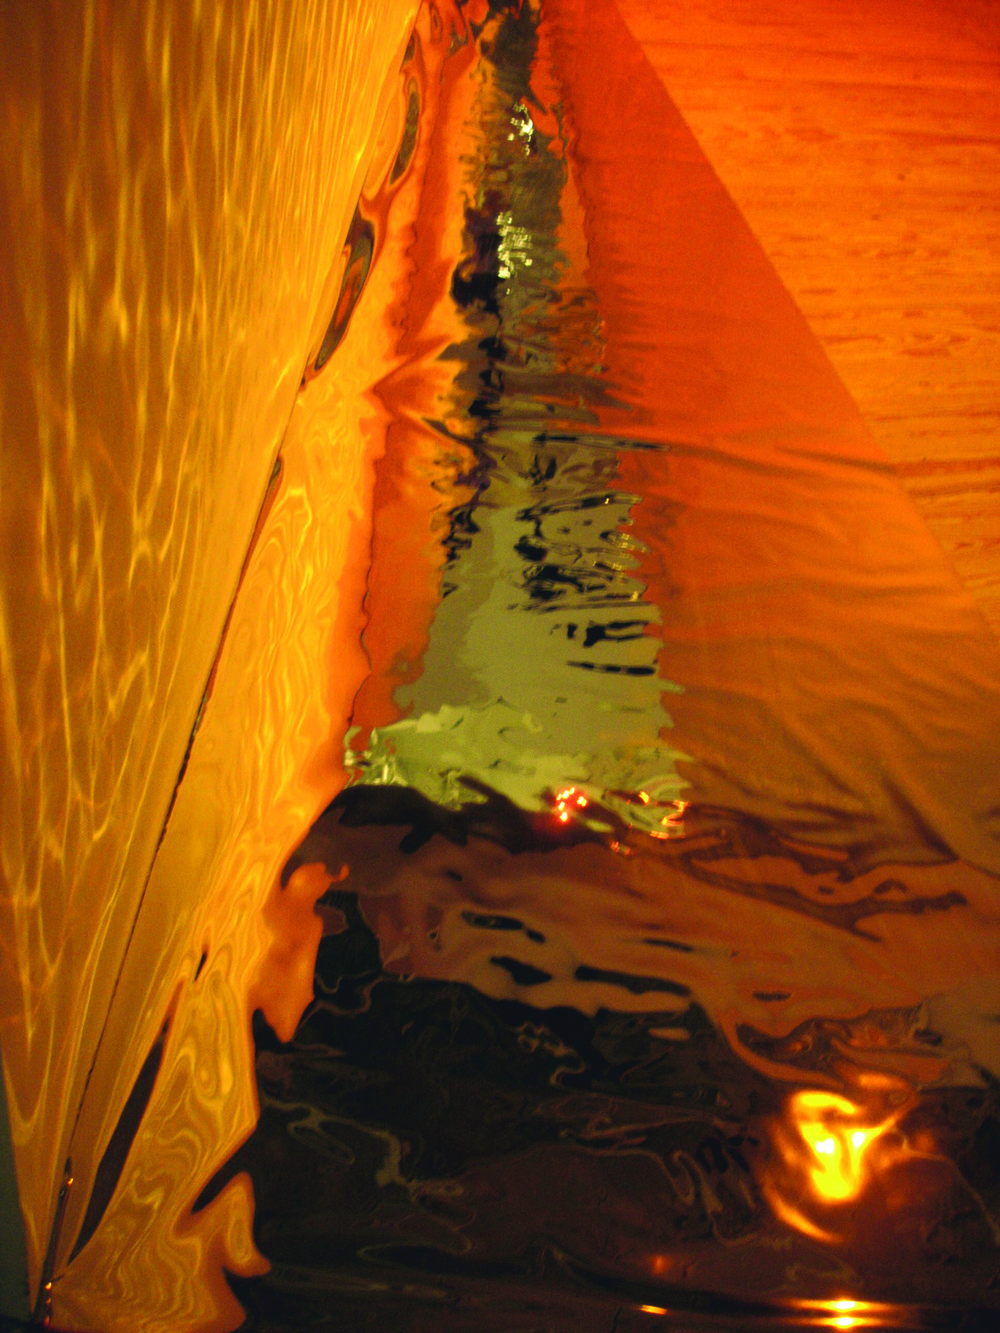 03_Untitled (pyramid), 2007_detail _floor_1_300dpi.jpg